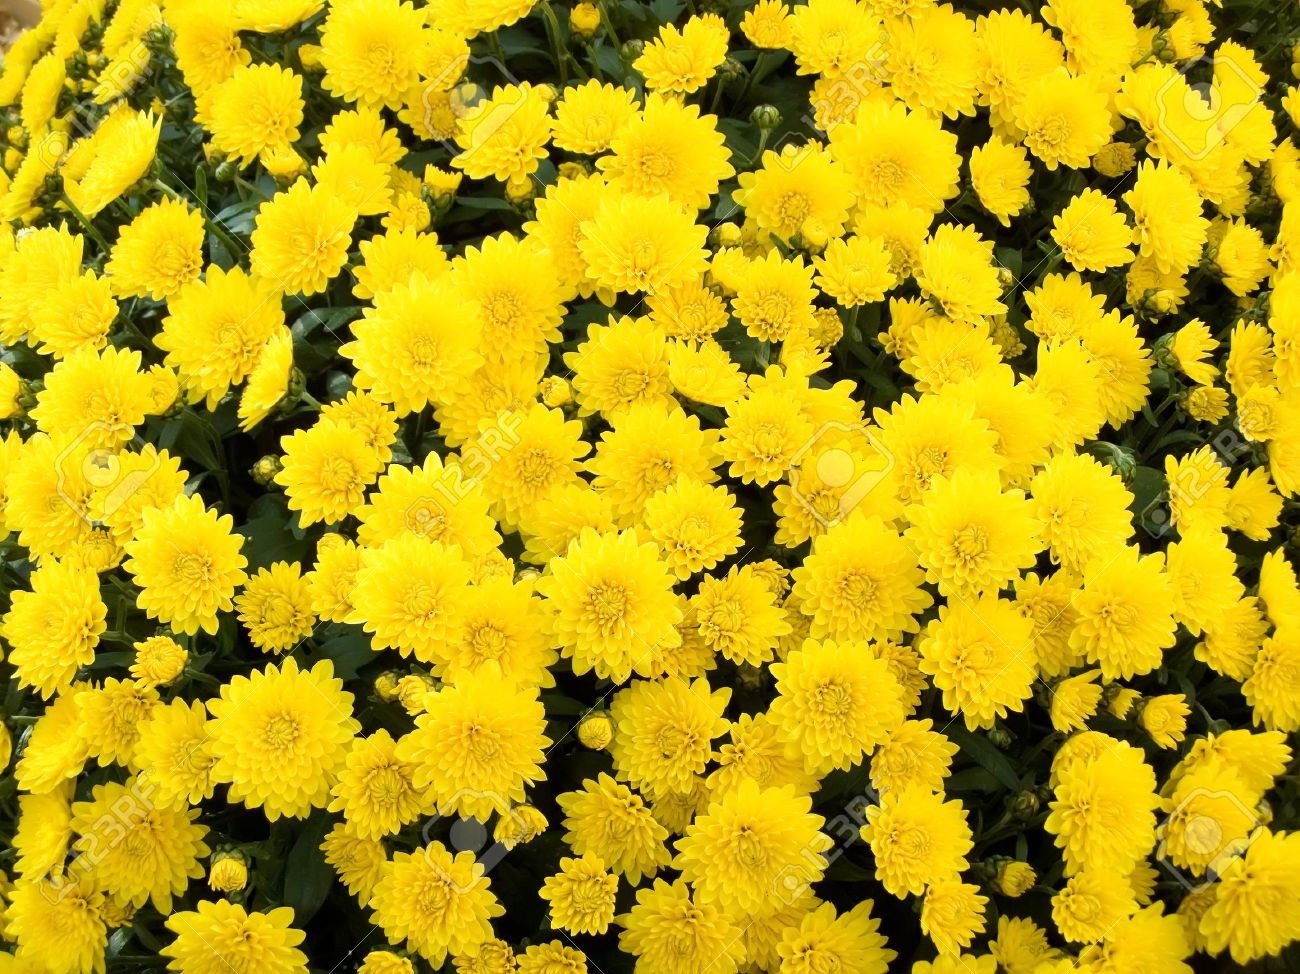 Yellow chrysanthemums merry gold flowers decoration of any yellow chrysanthemums merry gold flowers decoration of any holiday stock photo 2102767 mightylinksfo